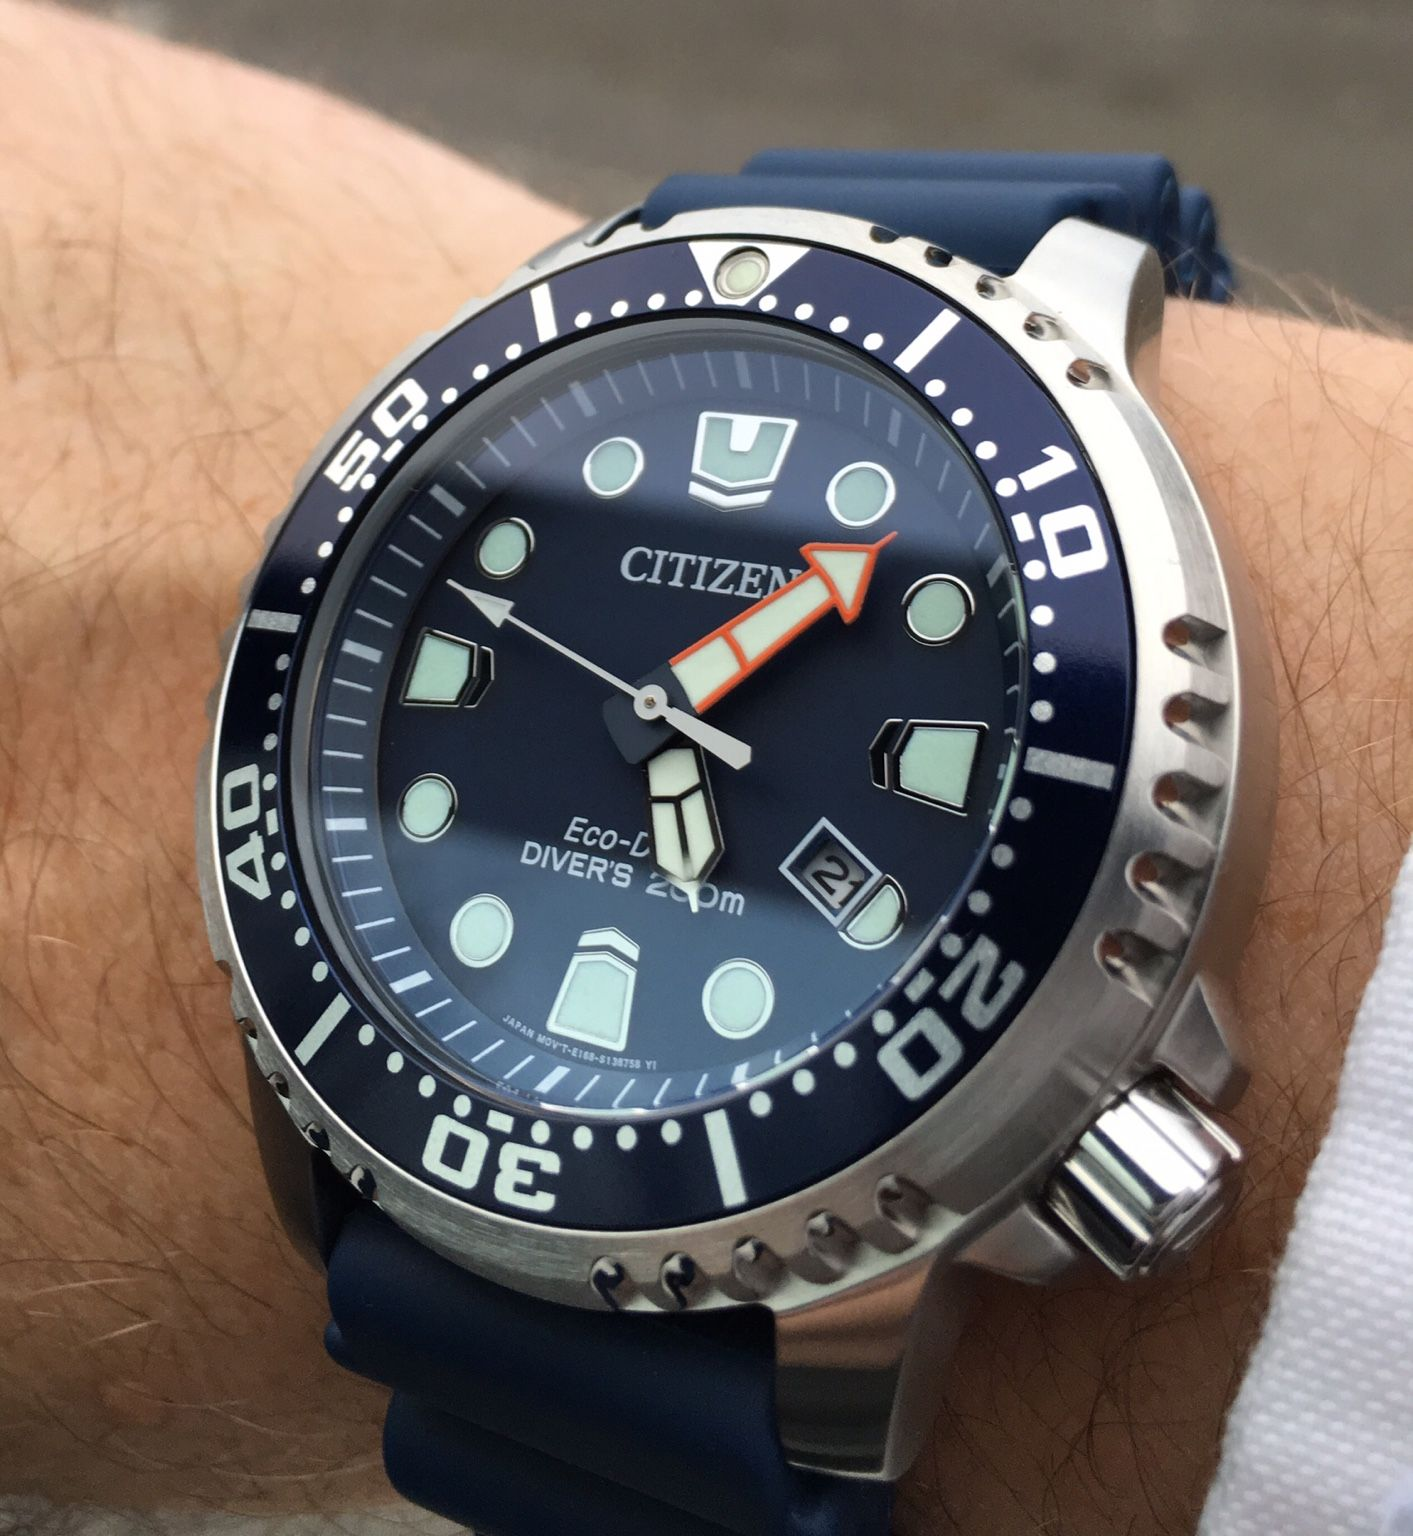 8142fa24c3a New Citizen Promaster Professional Diver BN0151-09L some pics - Page ...